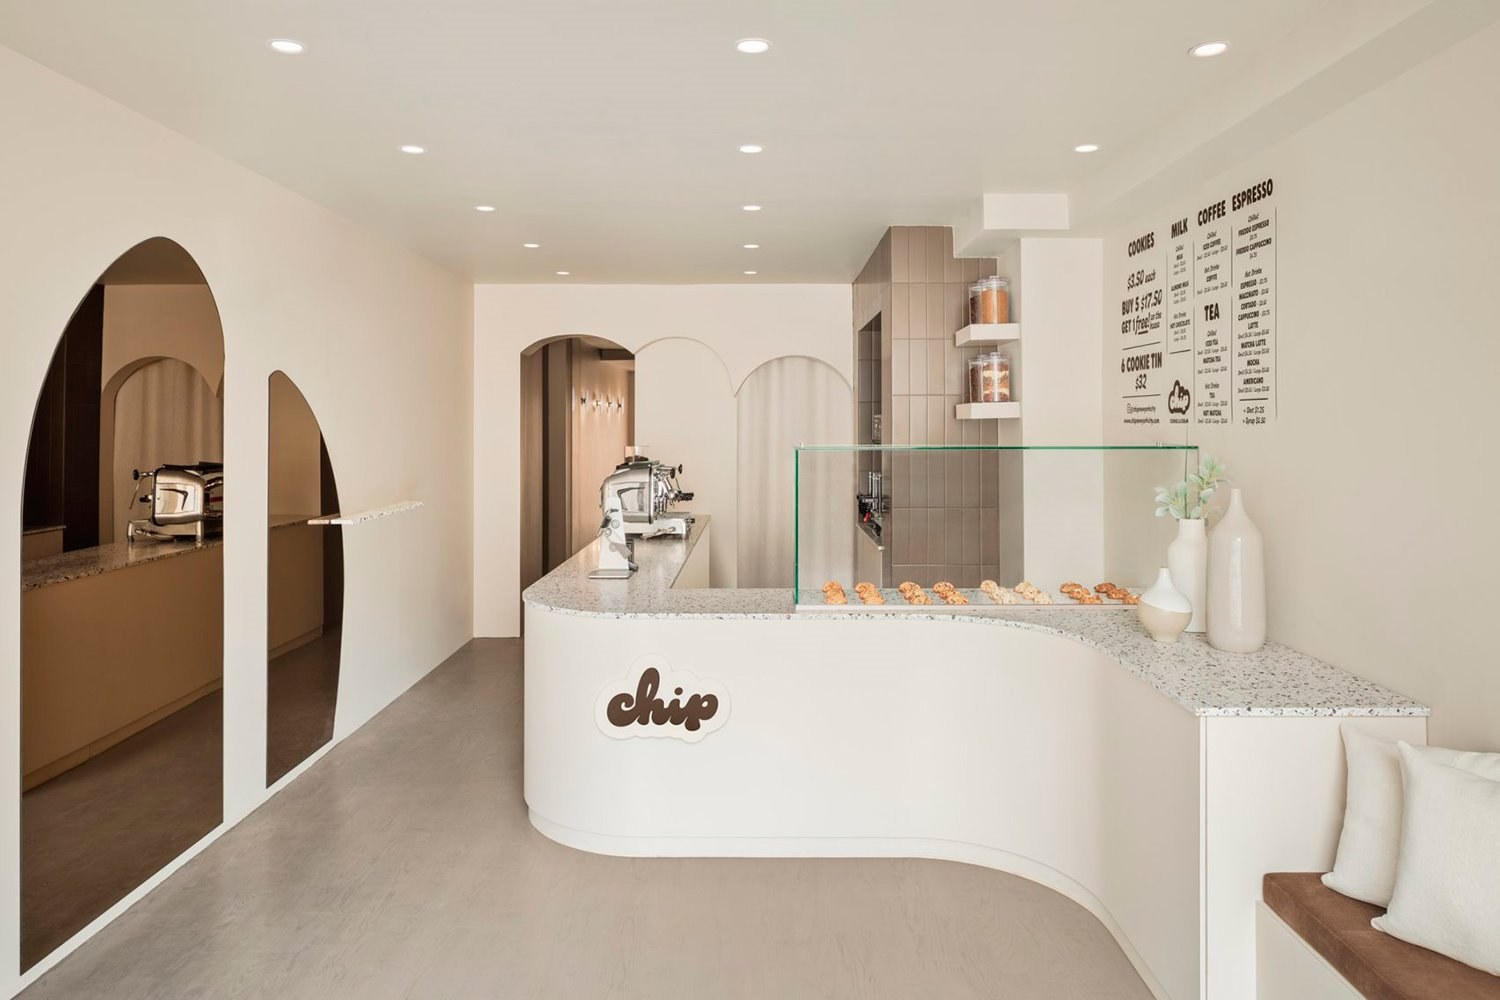 chip-cookies-and-cream-west village nueva york tienda de galletas